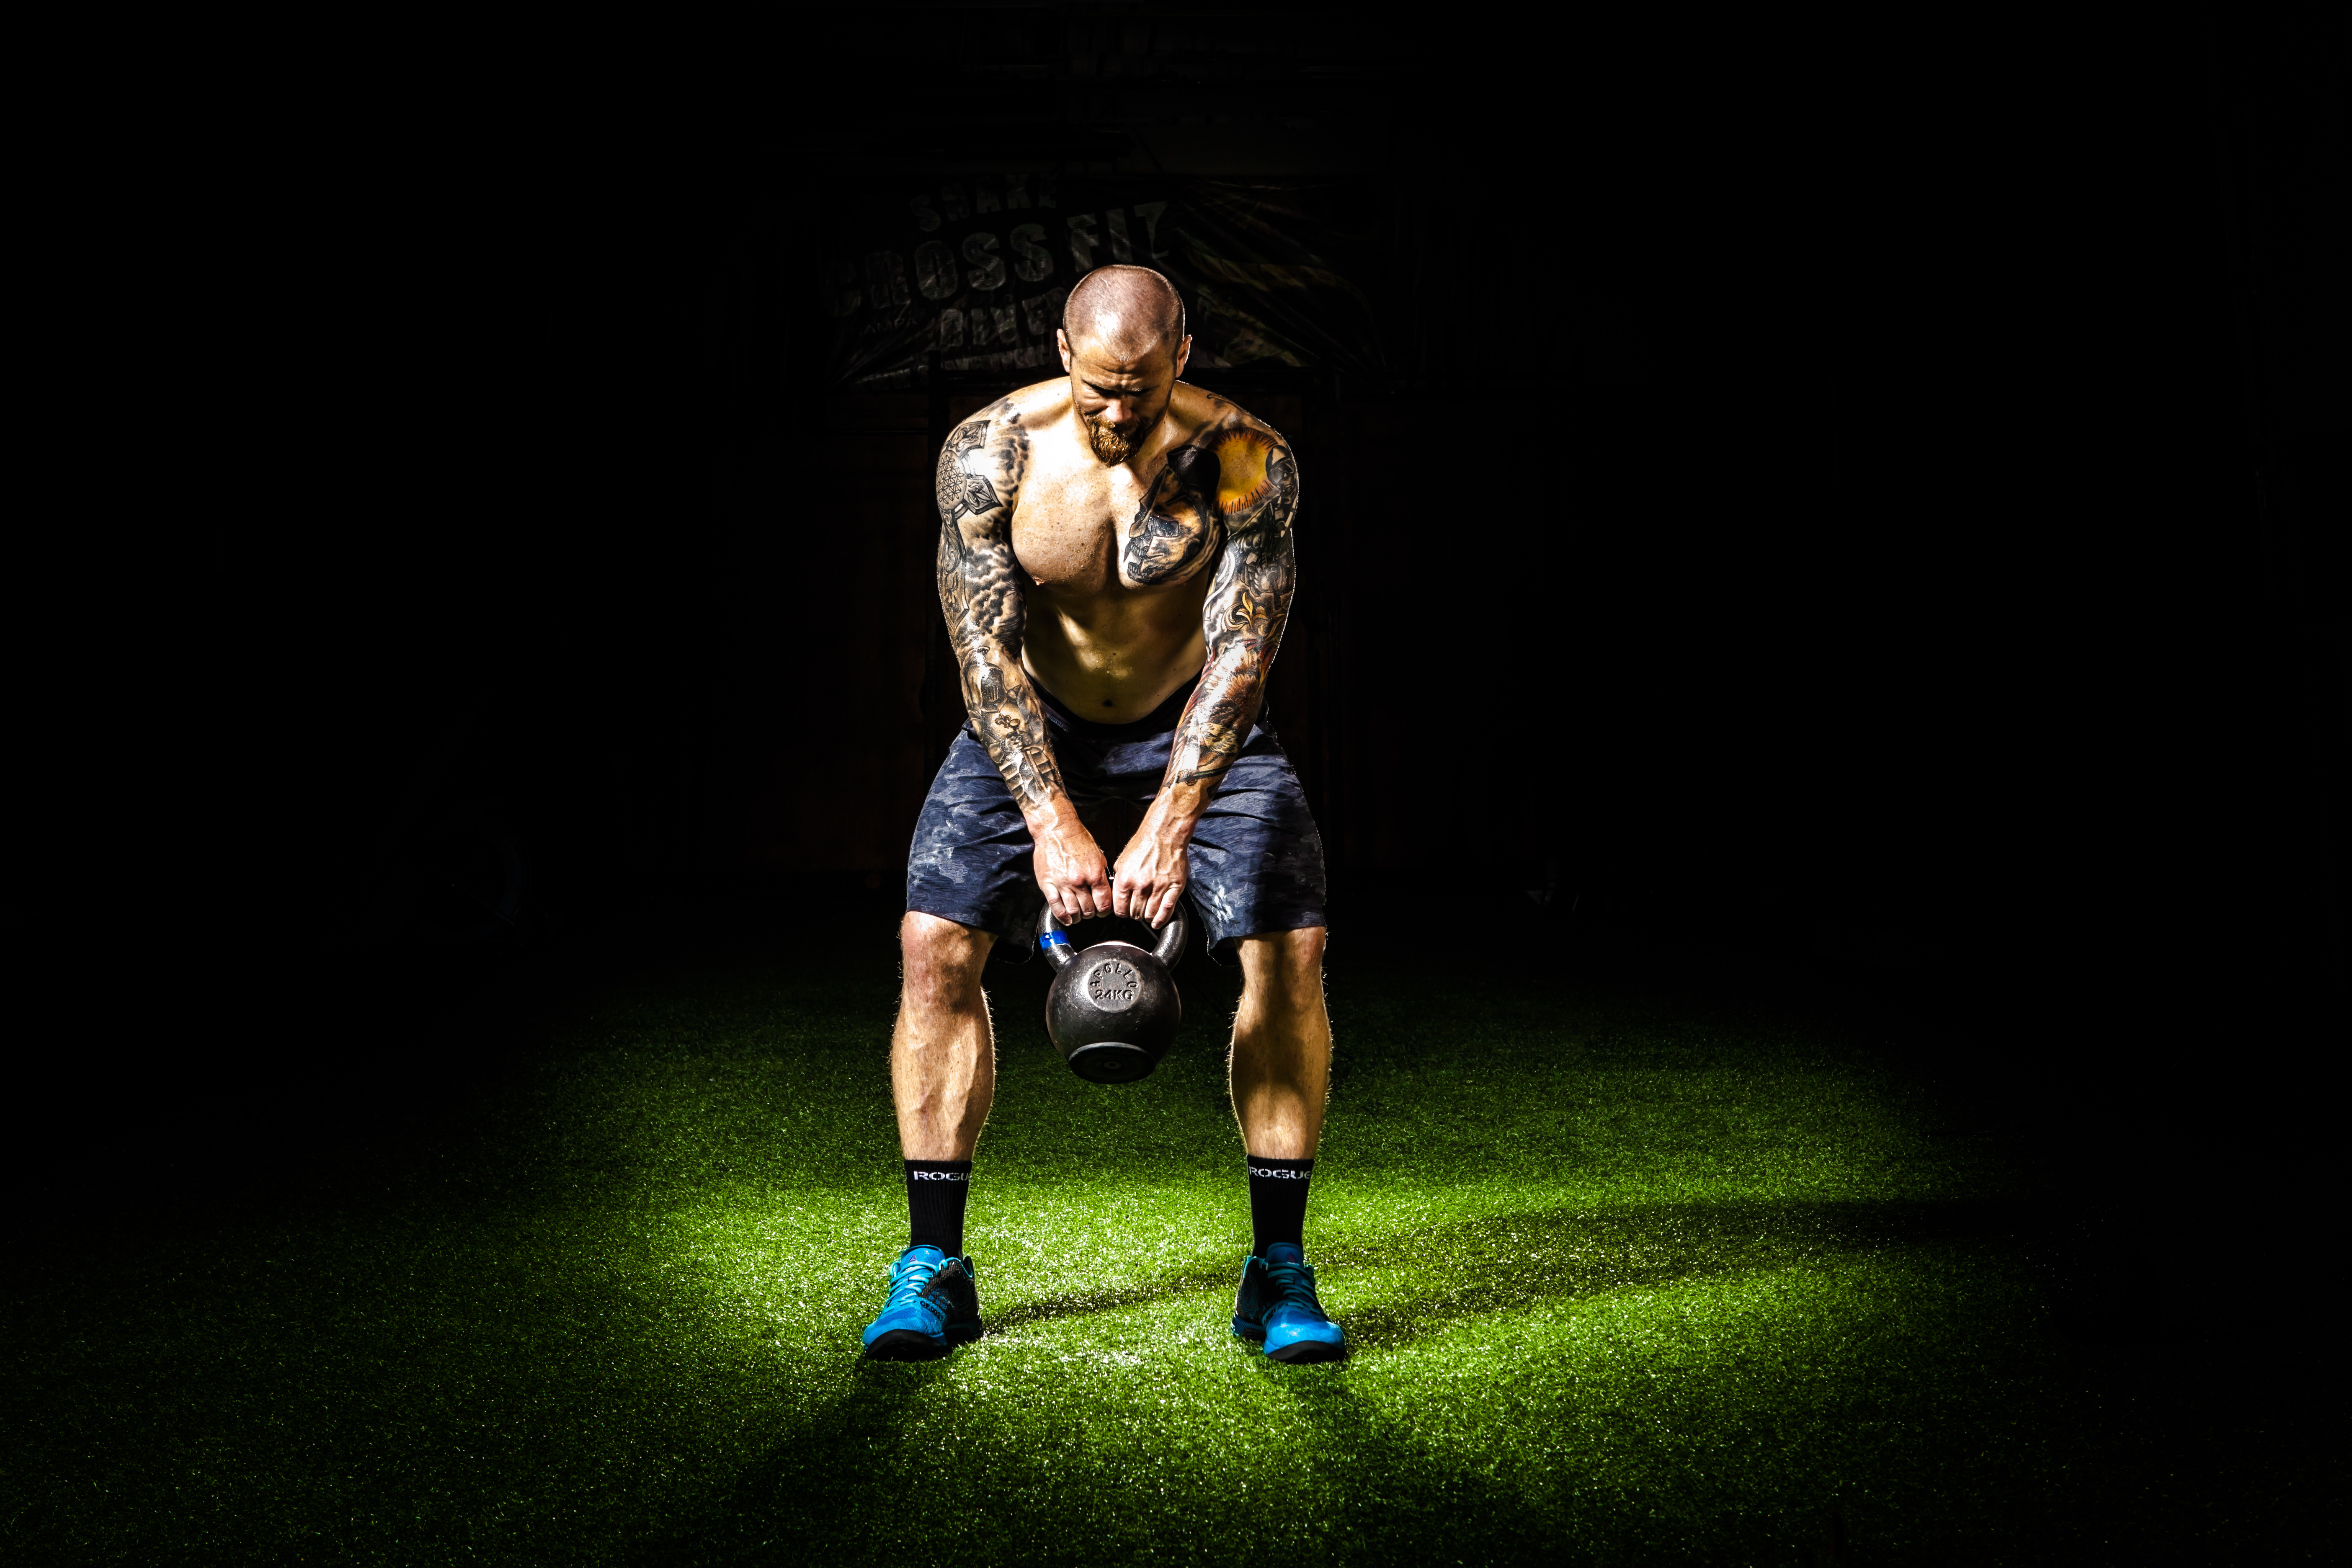 How to build muscles kettlebell